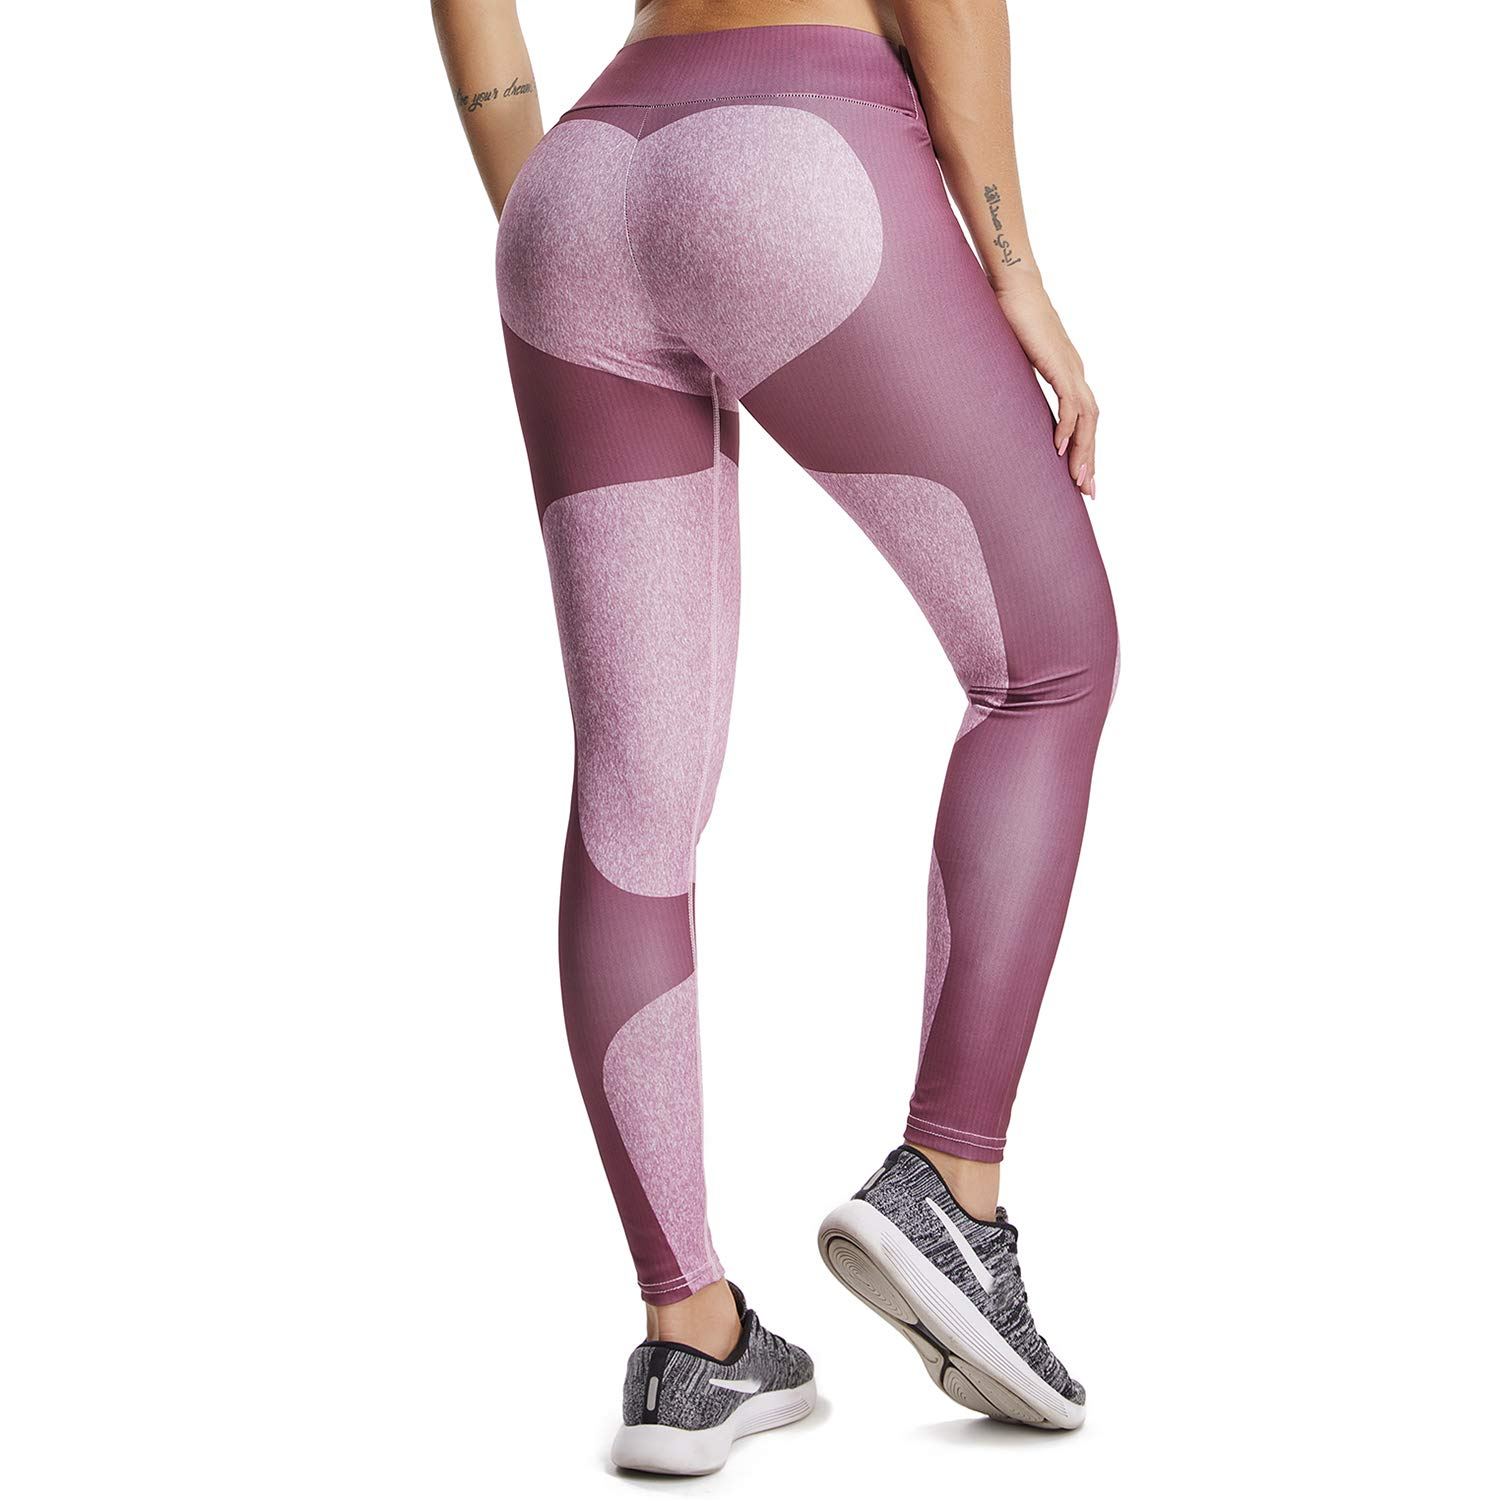 Loco go celebrities for leggings advise to wear for autumn in 2019